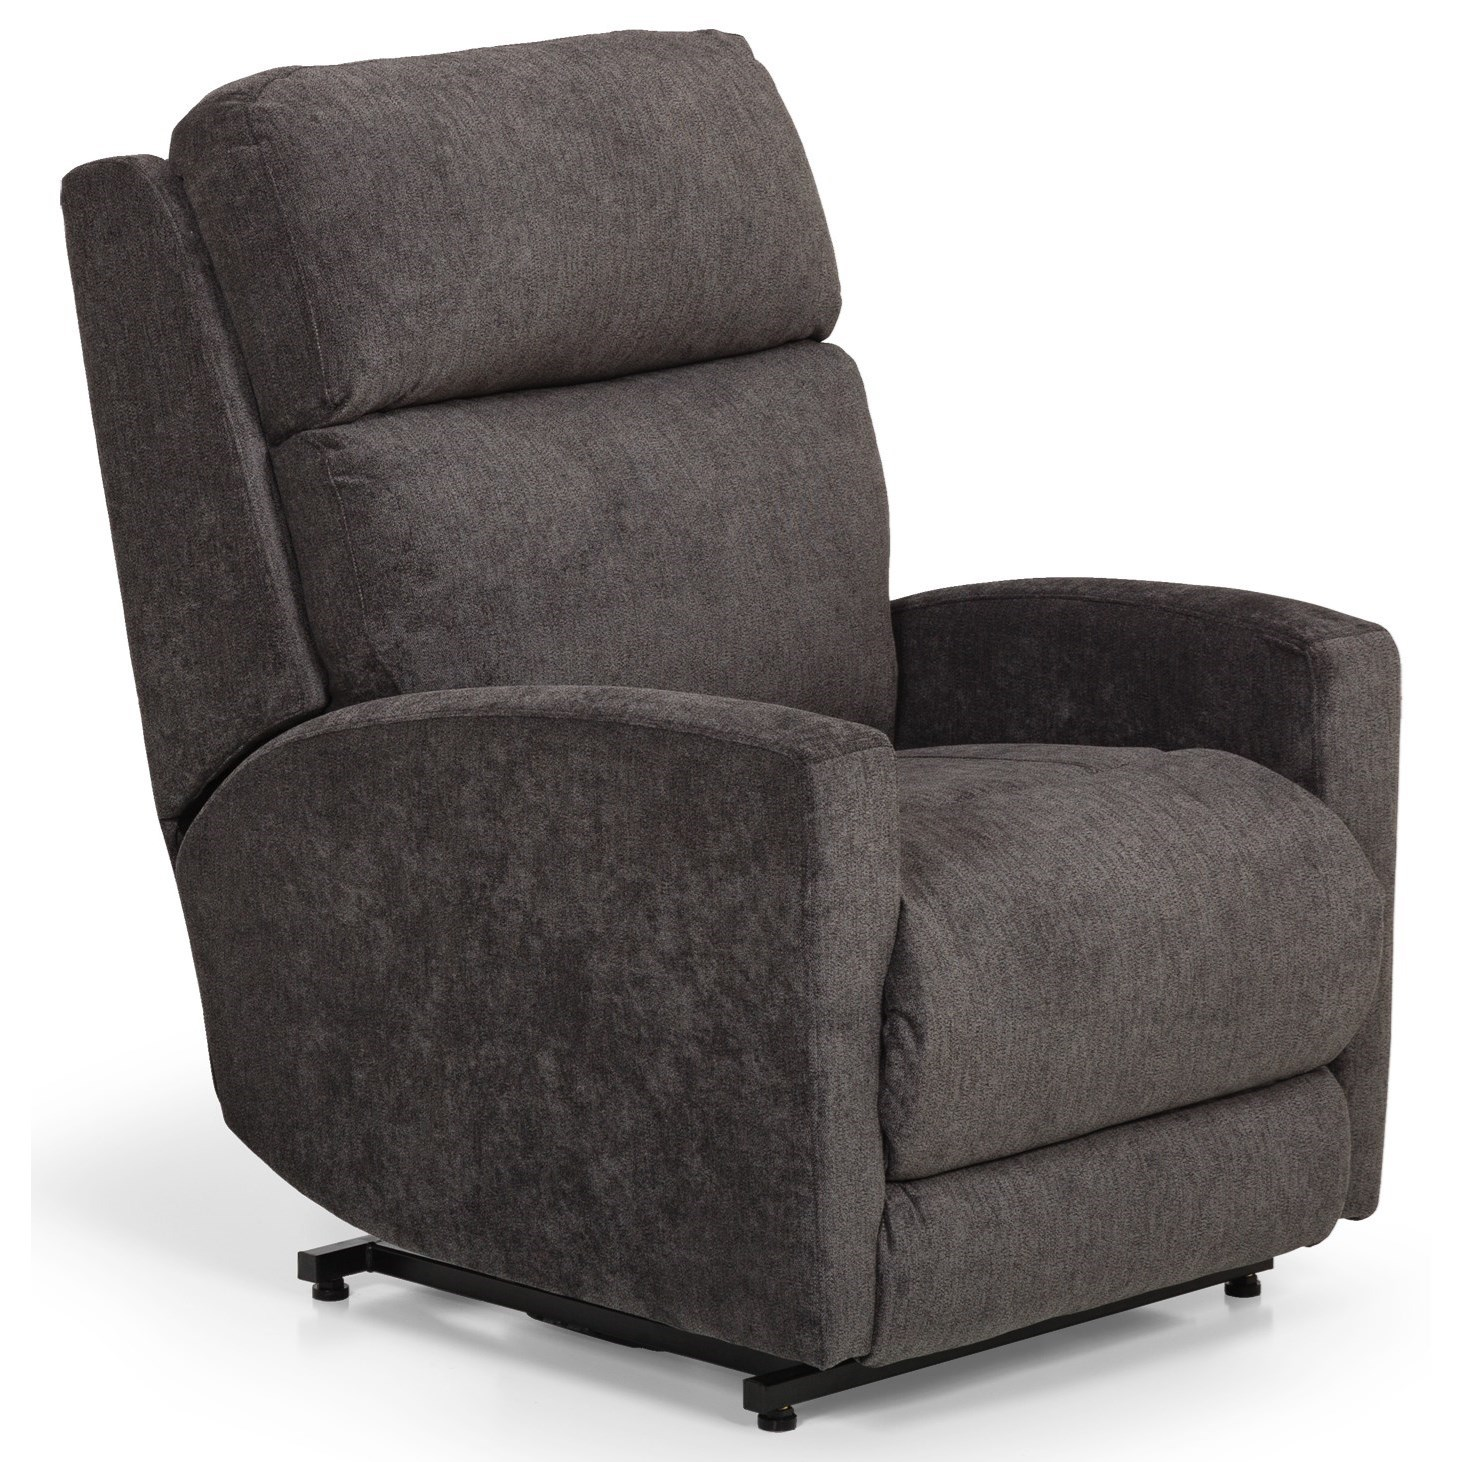 874 Power Lift Recliner by Stanton at Rife's Home Furniture